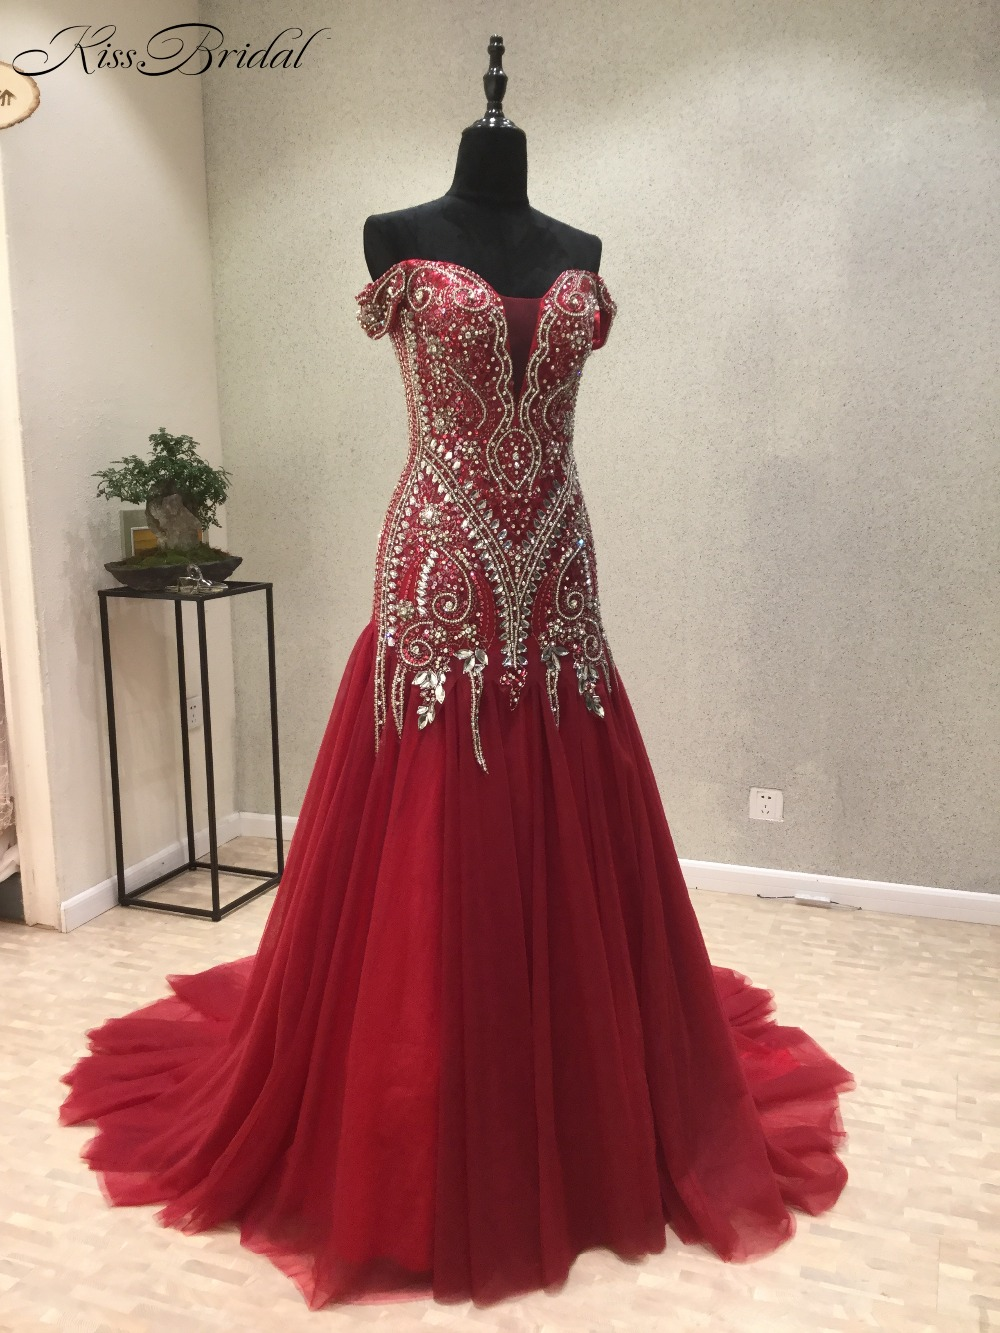 New Elegant Long Red   Evening     Dresses   2018Off-the-Shoulder Beading Tulle Prom   Dress   Women Party Gown